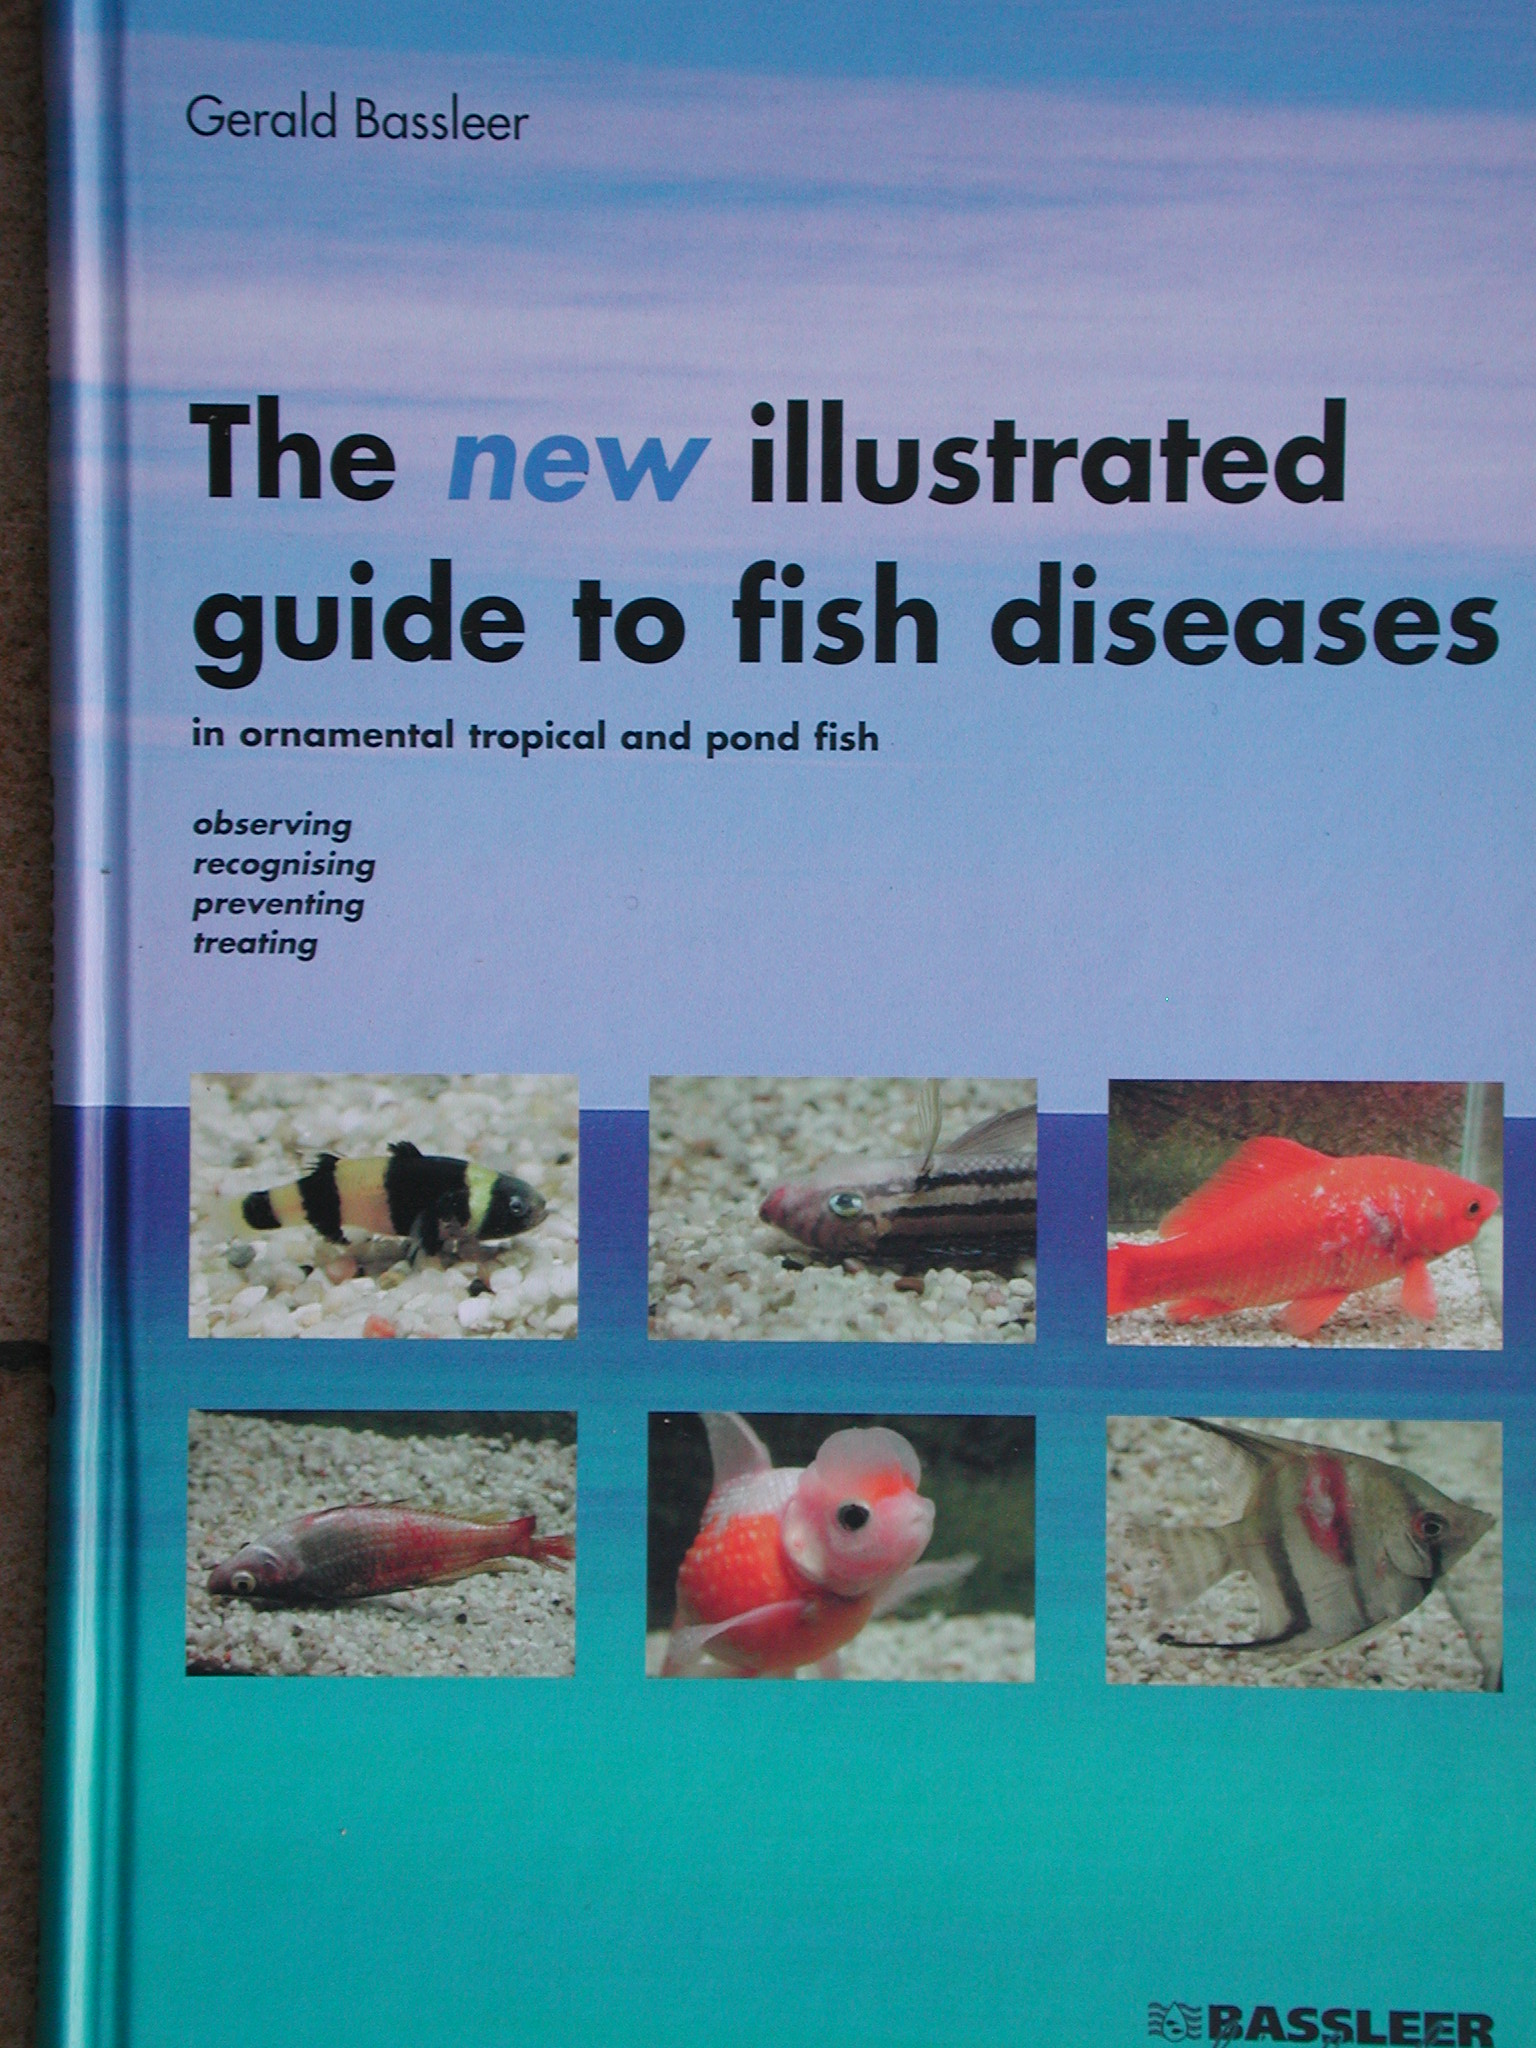 Bassleer Biofish | Best books to cure fish diseases